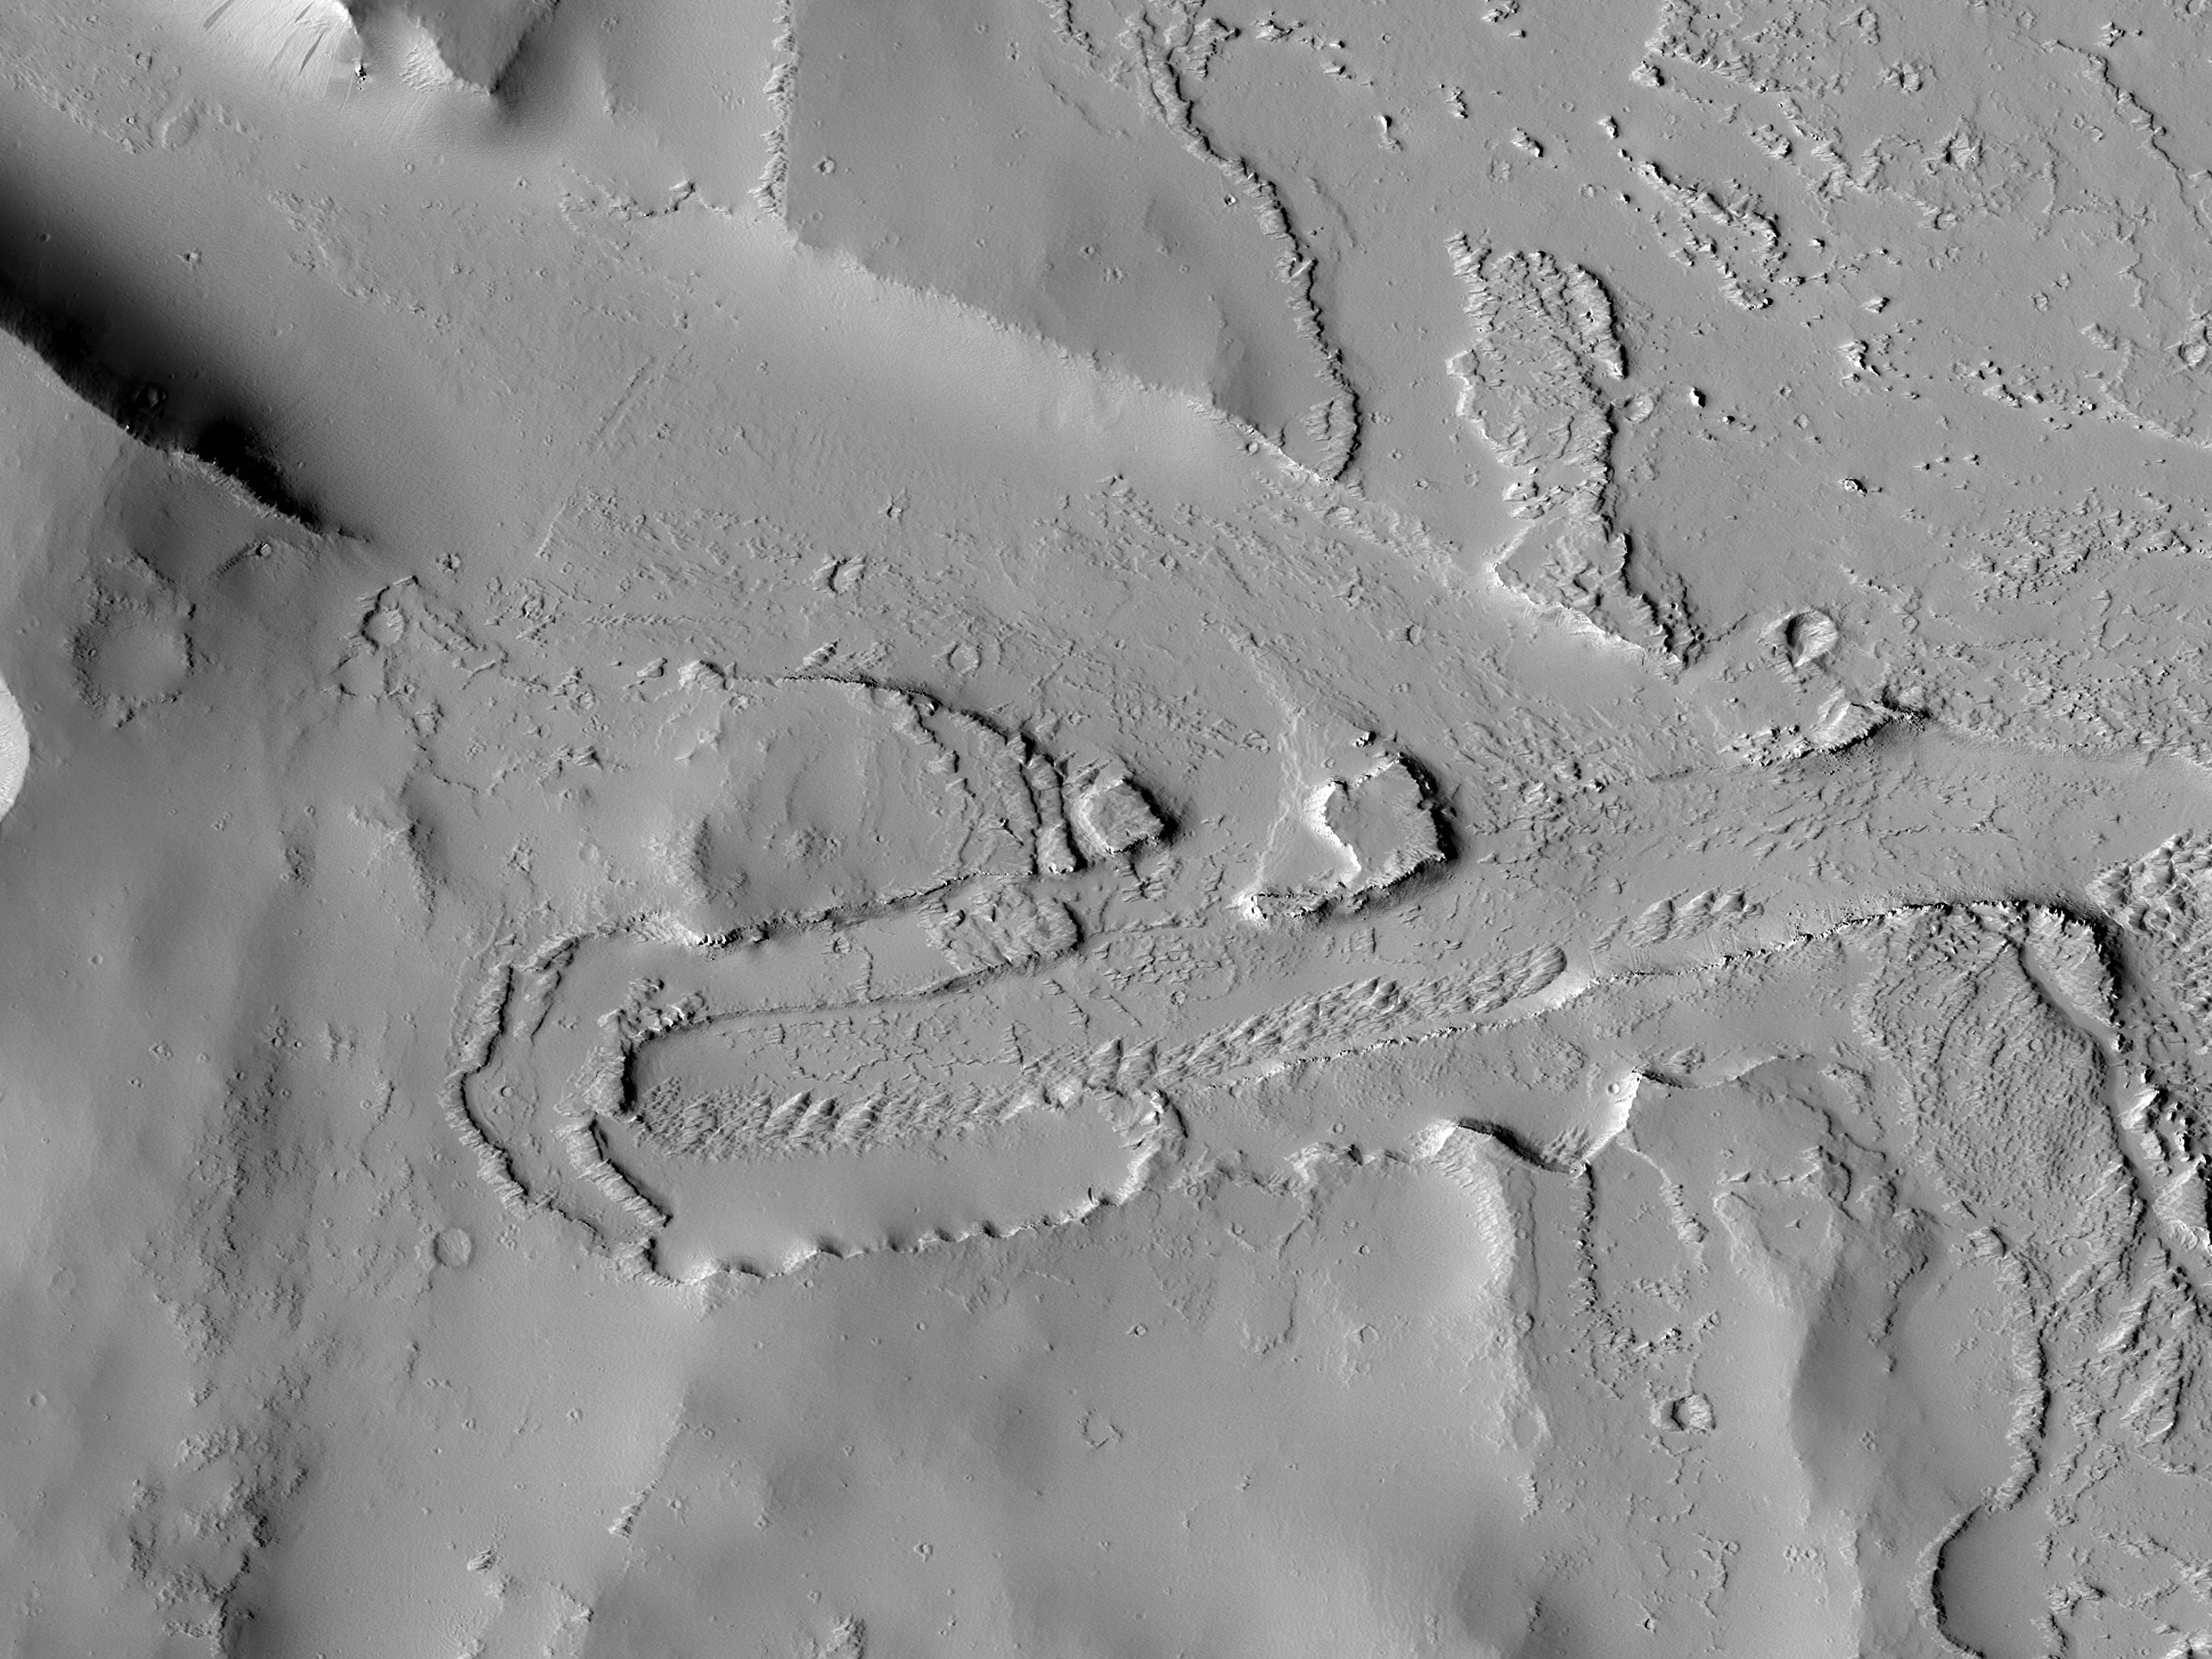 Terraced Trough near Ceraunius Fossae